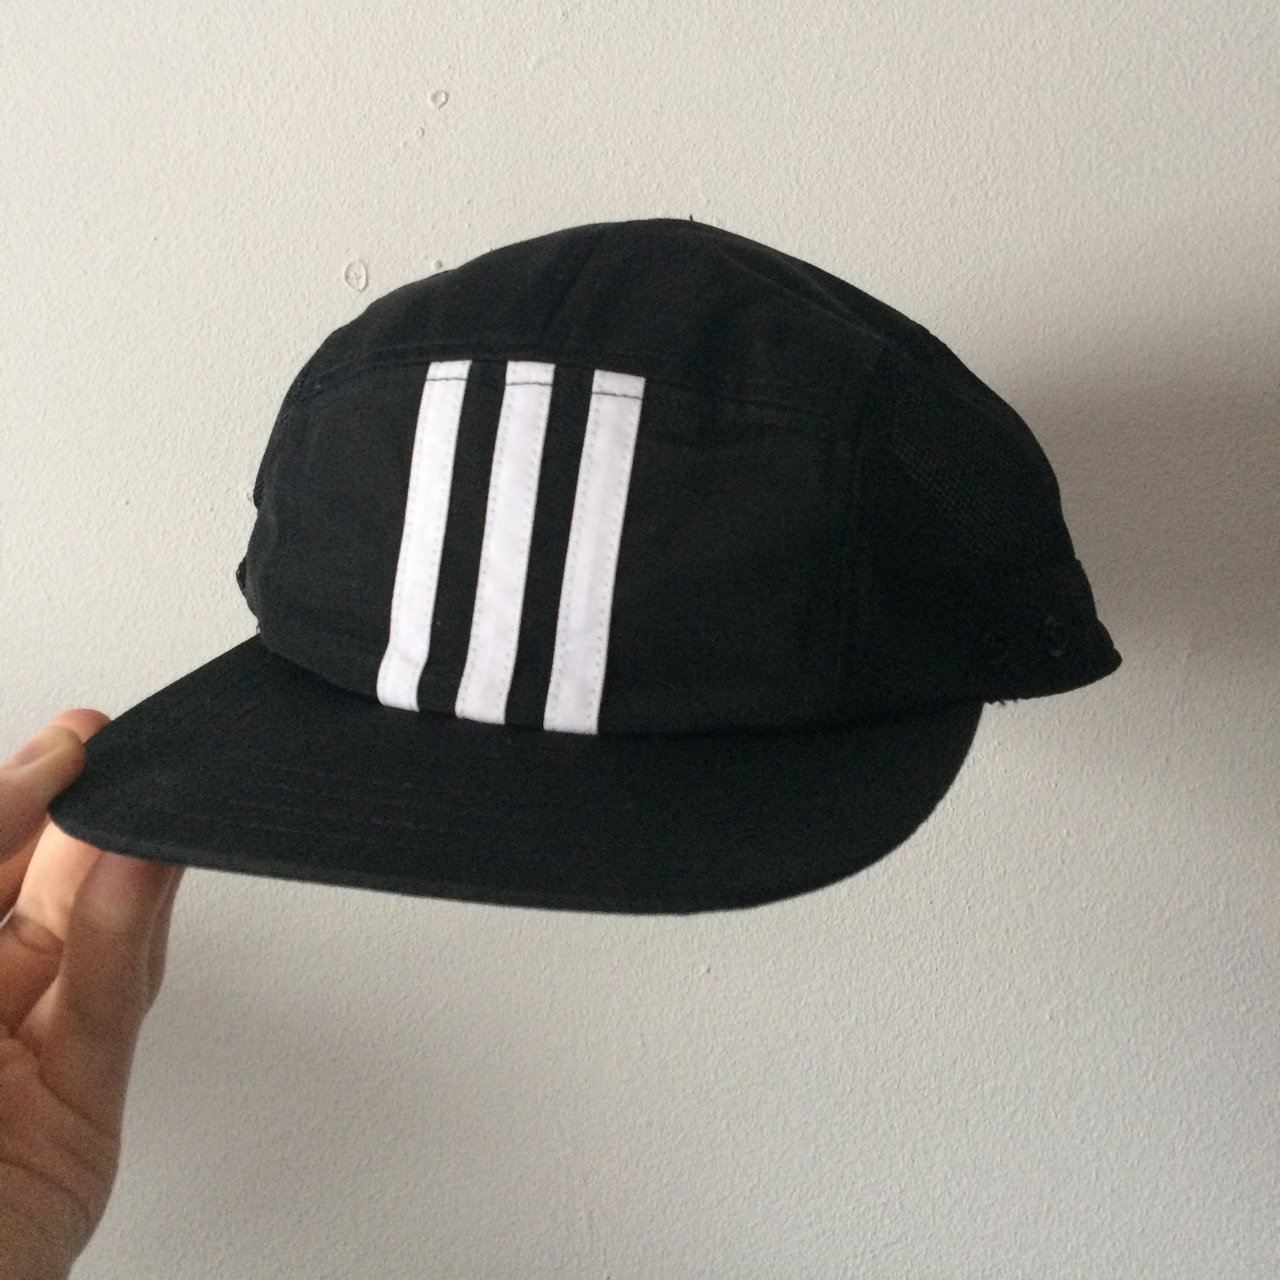 Palace Adidas 5 panel cap hat size L XL rare sold out garms. - Depop 562e13fccf0